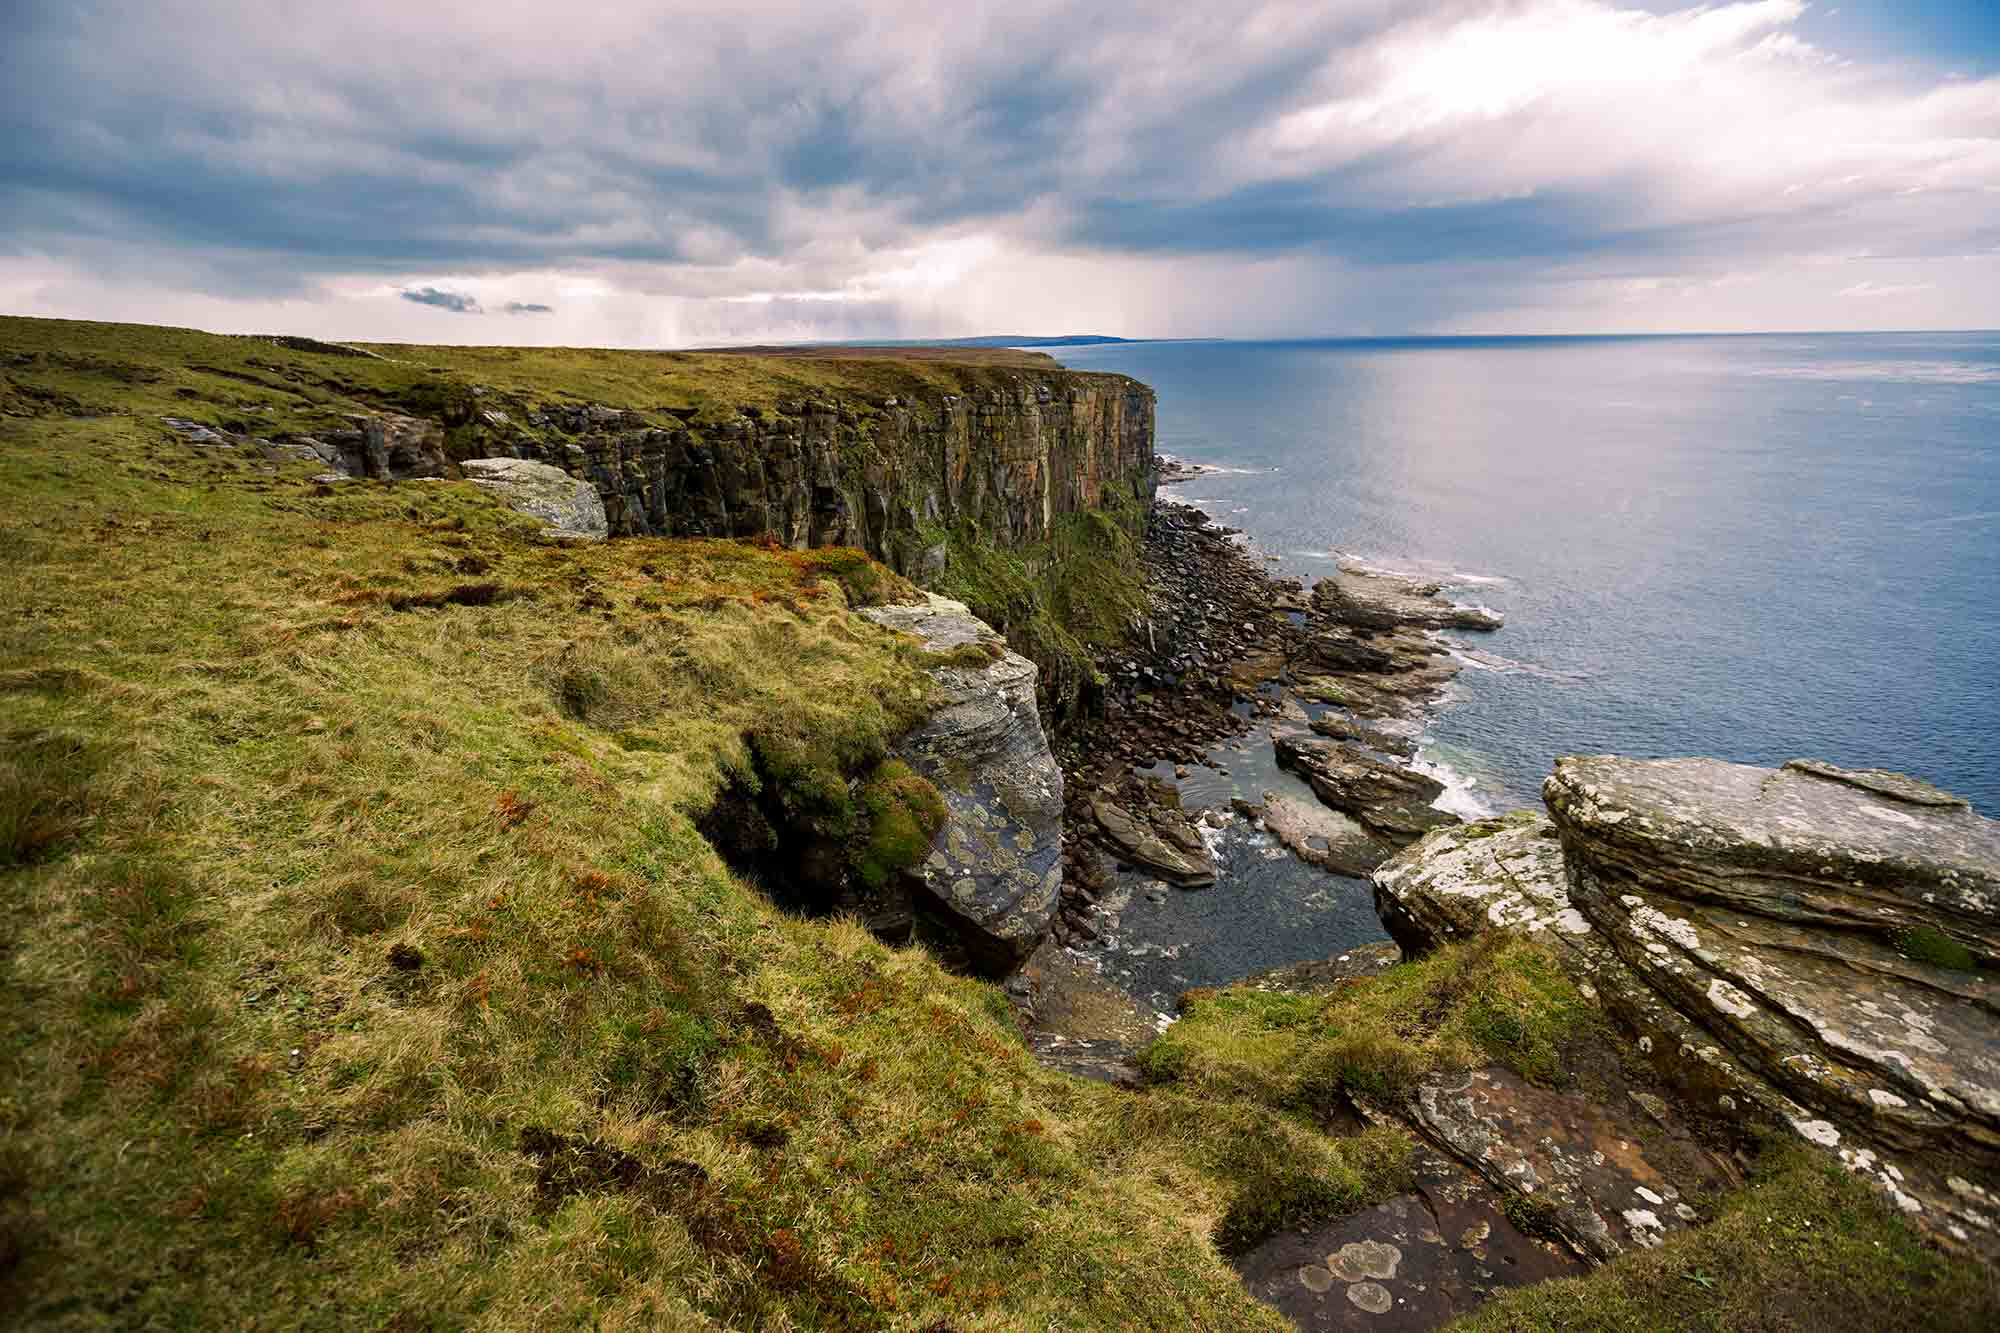 More cliffs of Scotland. © ULLI MAIER & NISA MAIER